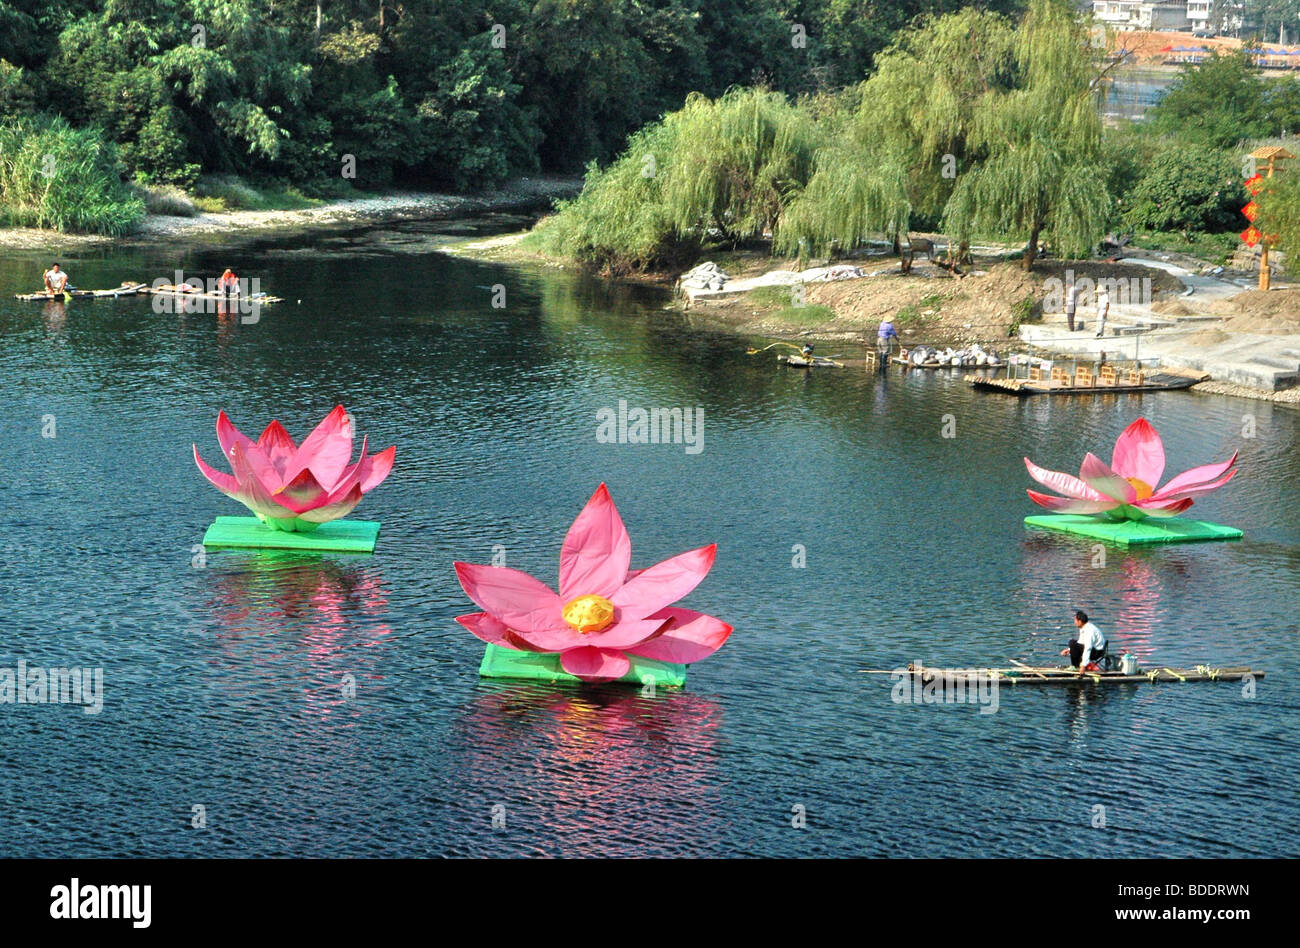 Lotus flower china stock photos lotus flower china stock images china guilin yangshuo li river large lotus flower decorations on the river stock image dhlflorist Choice Image